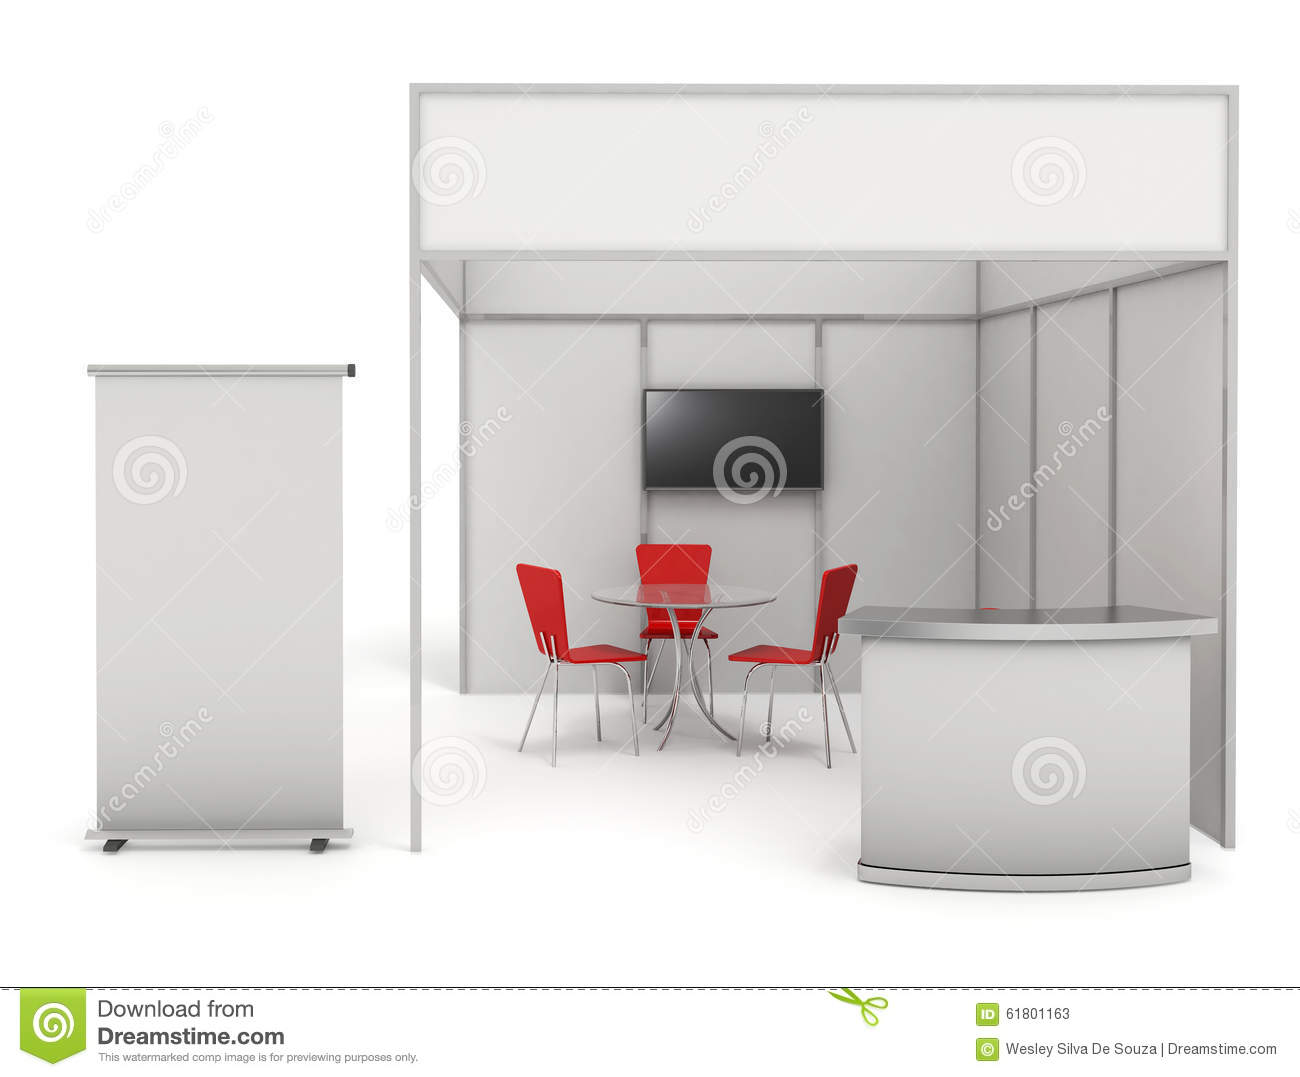 Exhibition Booth Clipart : Blank white trade exhibition stand cartoon vector